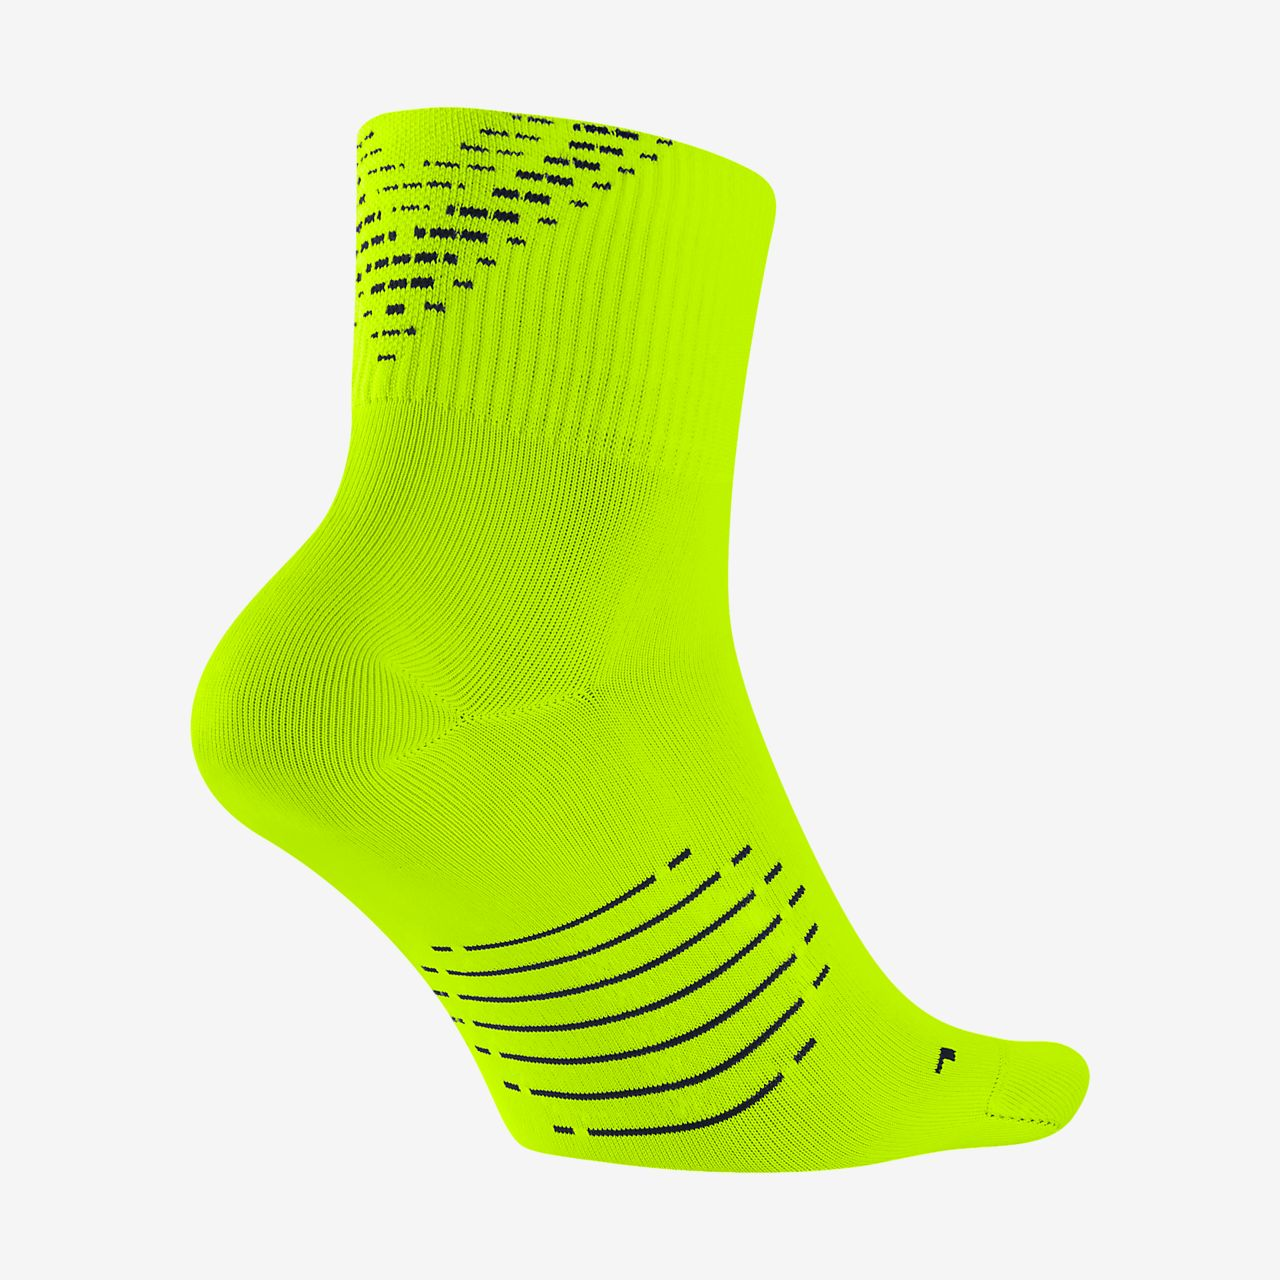 Nike Elite Lightweight 2.0 Quarter Running Socks